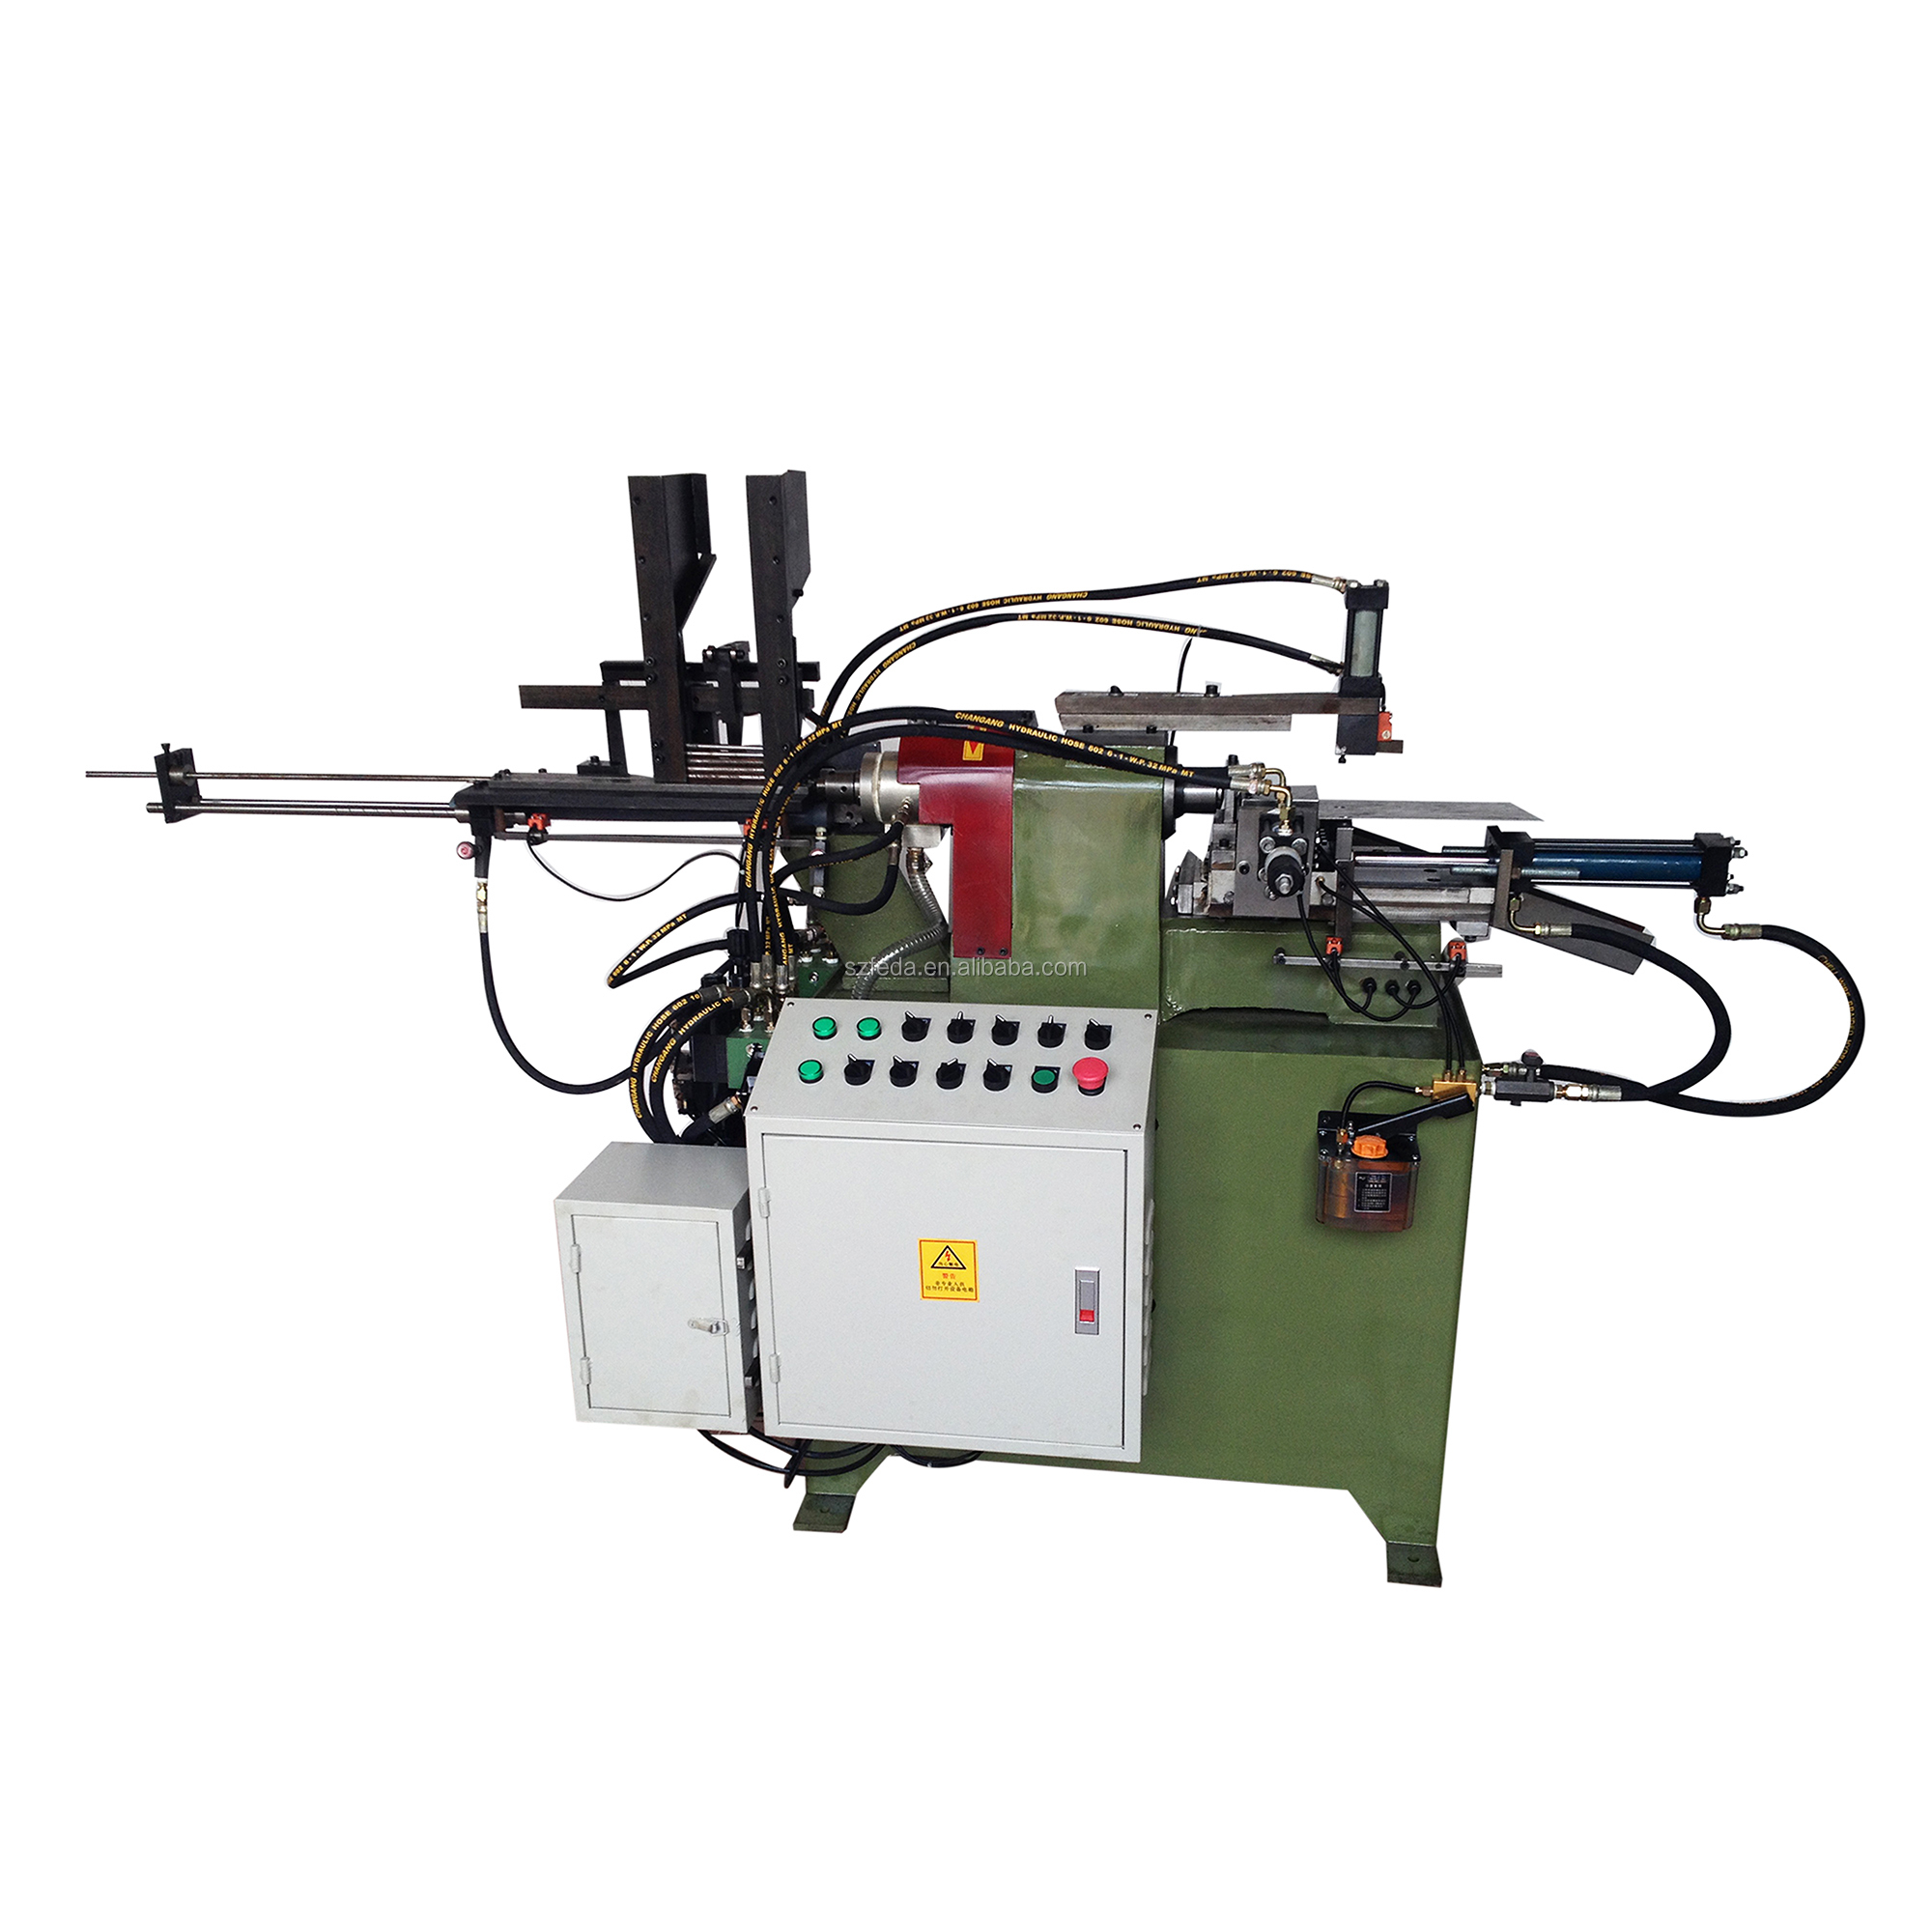 FEDA cheap lathe machine automatic lathe machine price automatic lathe machine factory